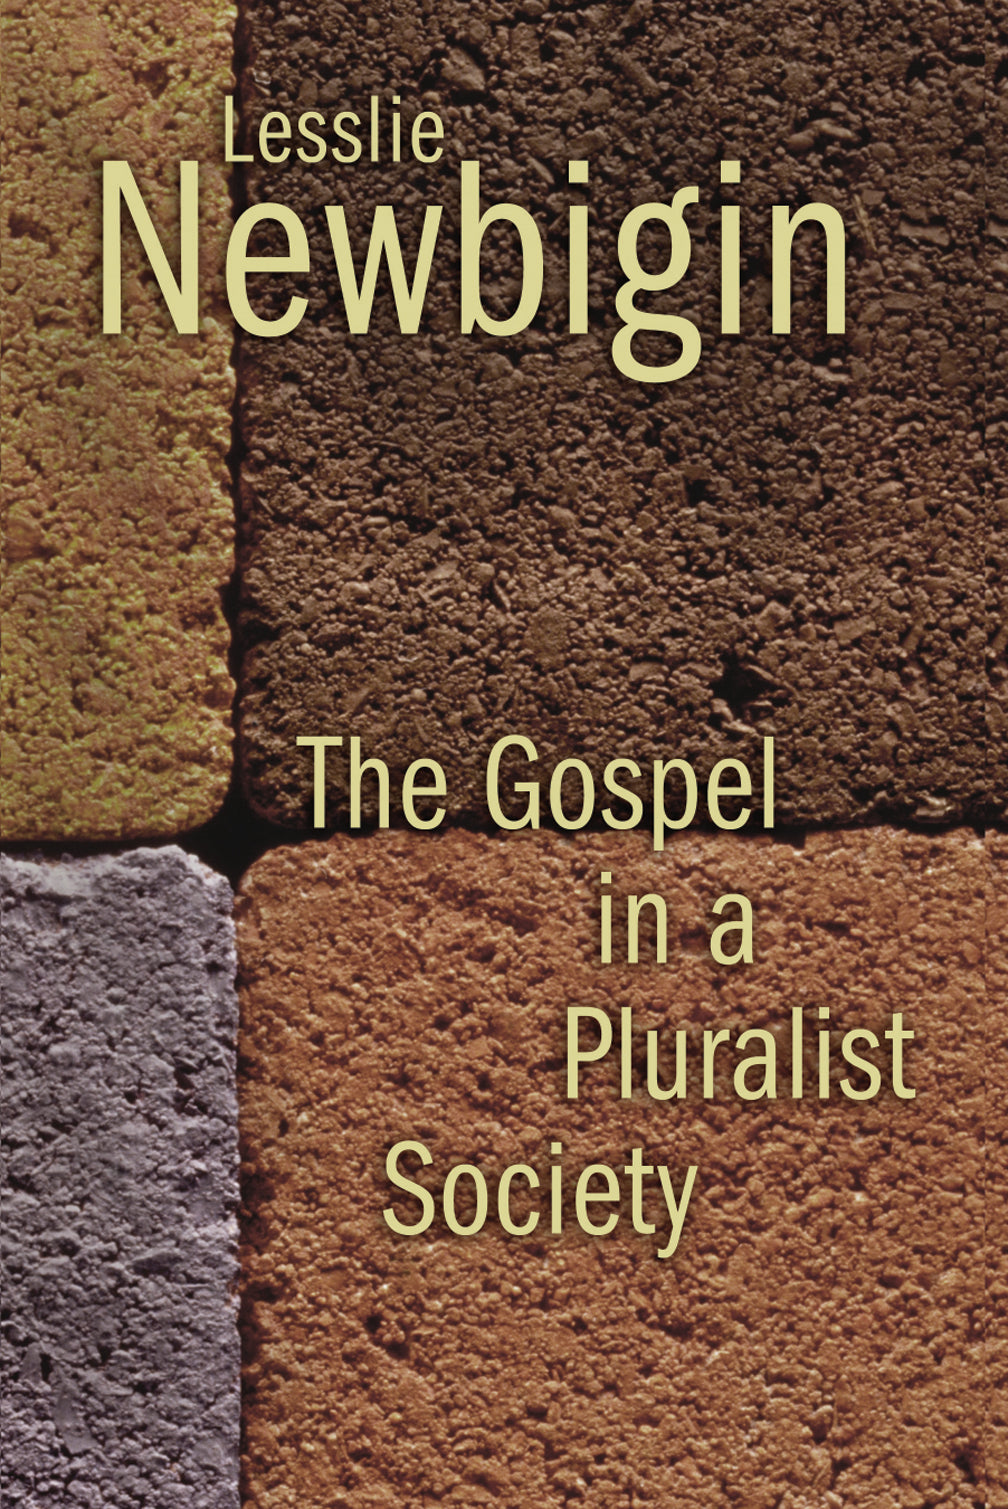 The Gospel in a Pluralistic Society